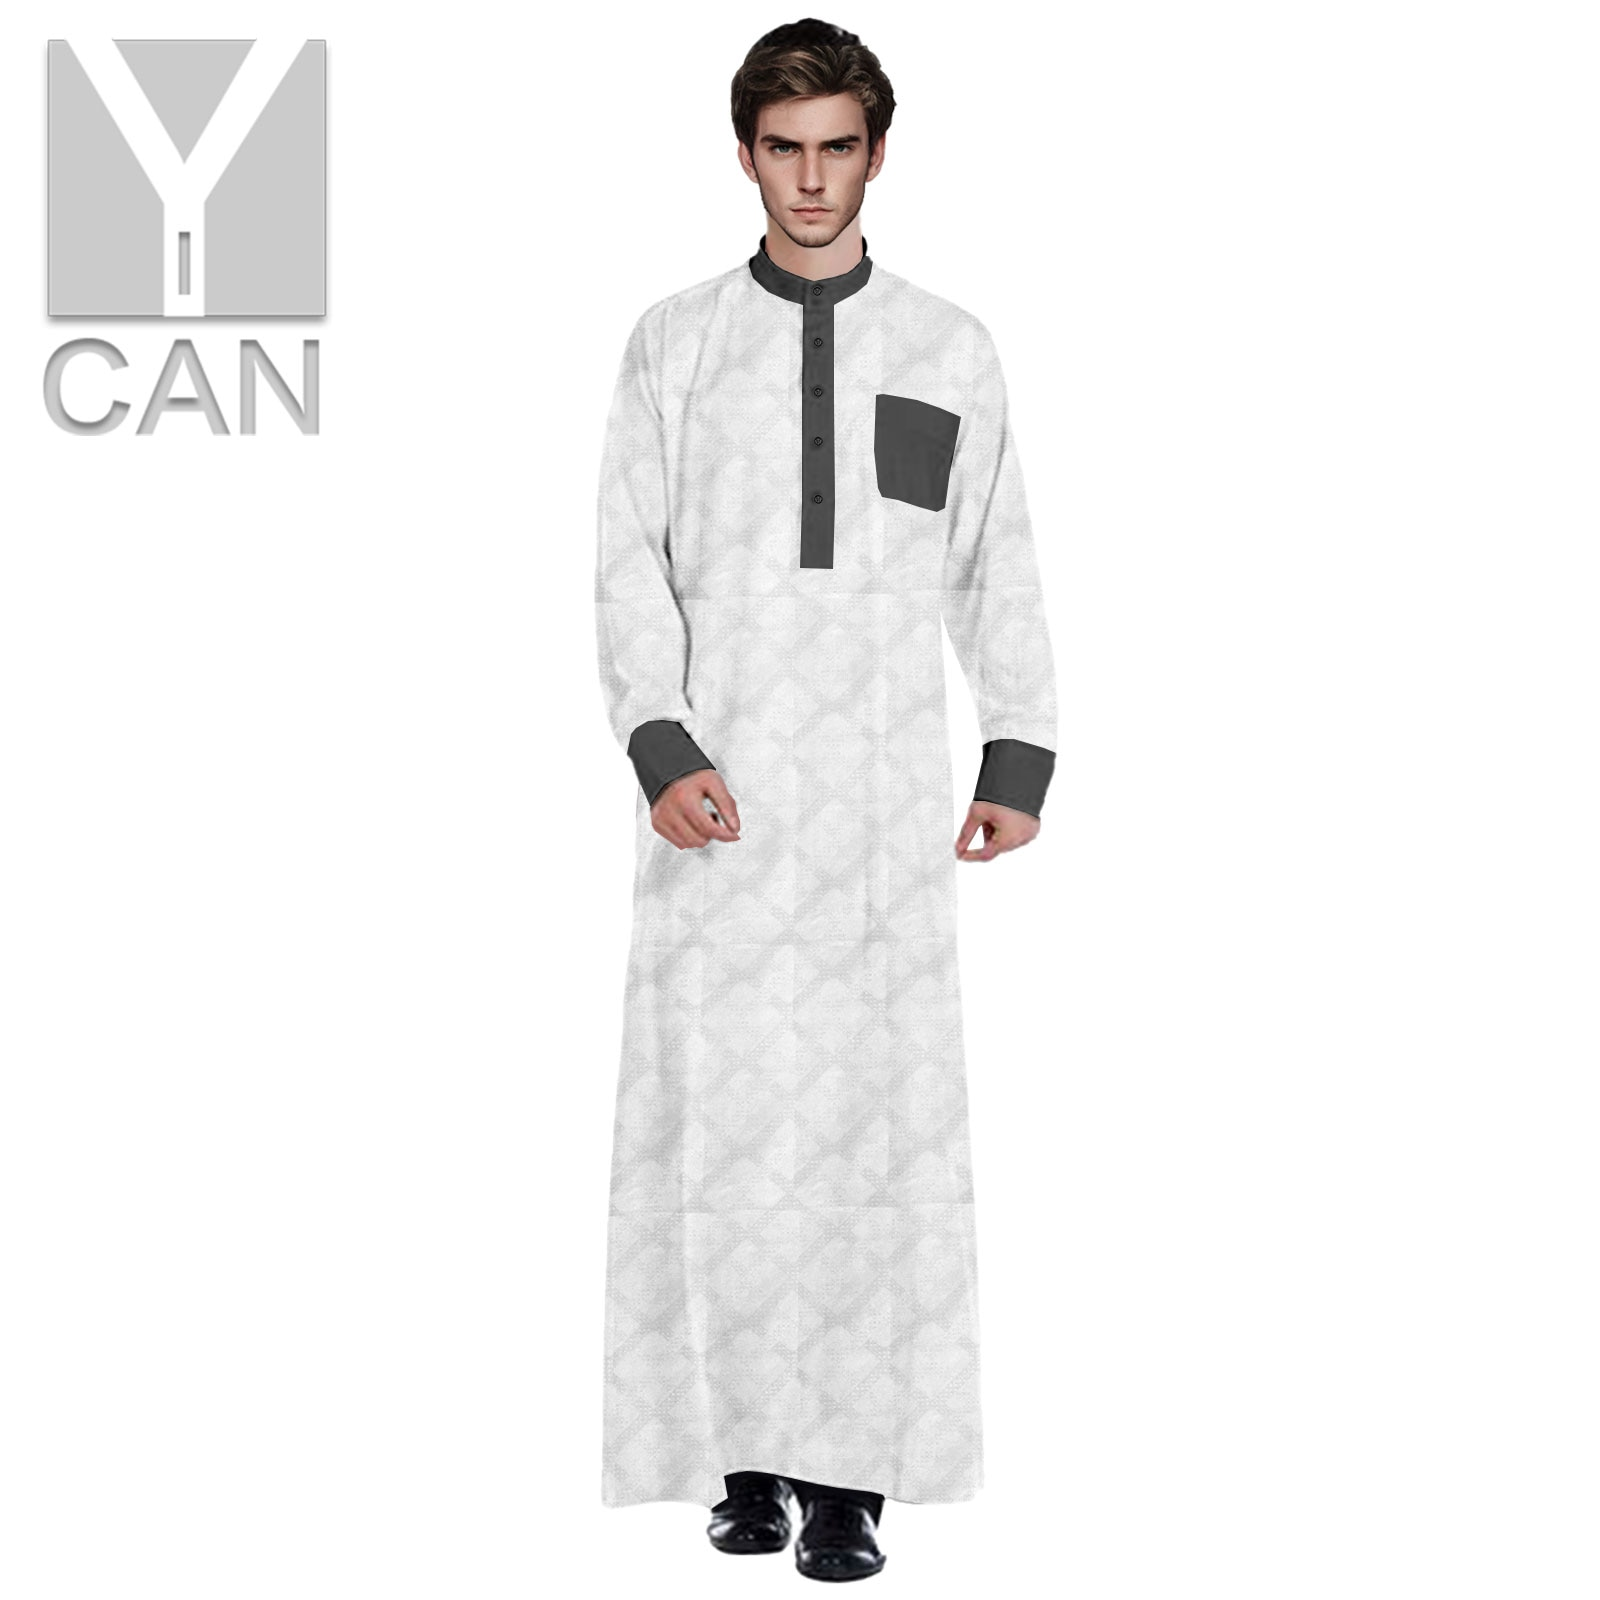 Y-CAN Muslim Fashion for Men Jubba Thobe Pakistan Free With Stand Up Collar Contrast Islamic Arabic Clothing Muslim Robe Y211003